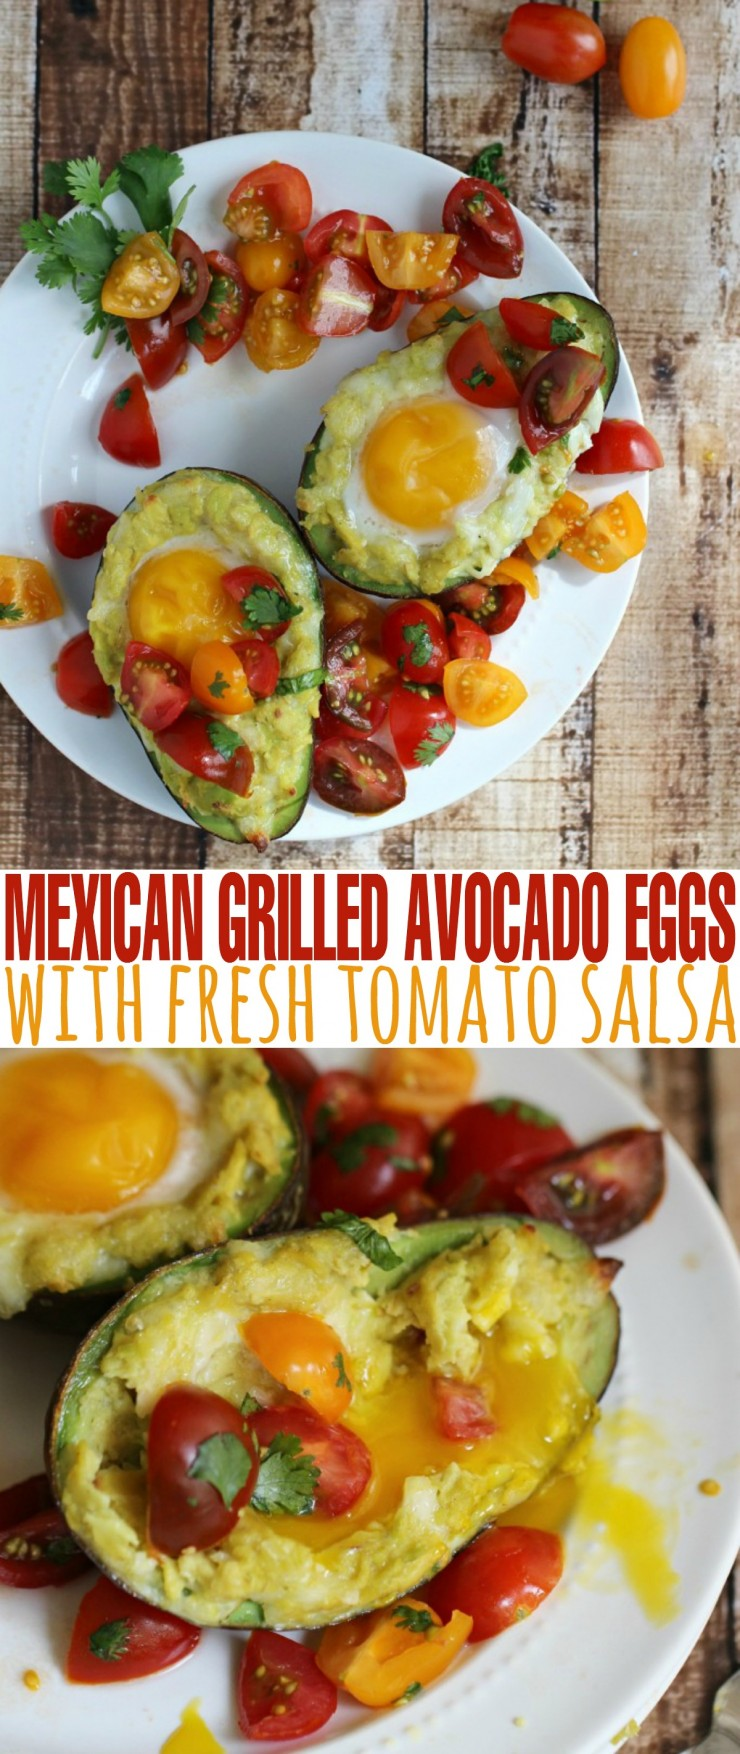 This recipe for Mexican Grilled Avocado Eggs with Fresh Tomato Salsa is the perfect summer meal!  They are great for Breakfast, Brunch, and lunch!